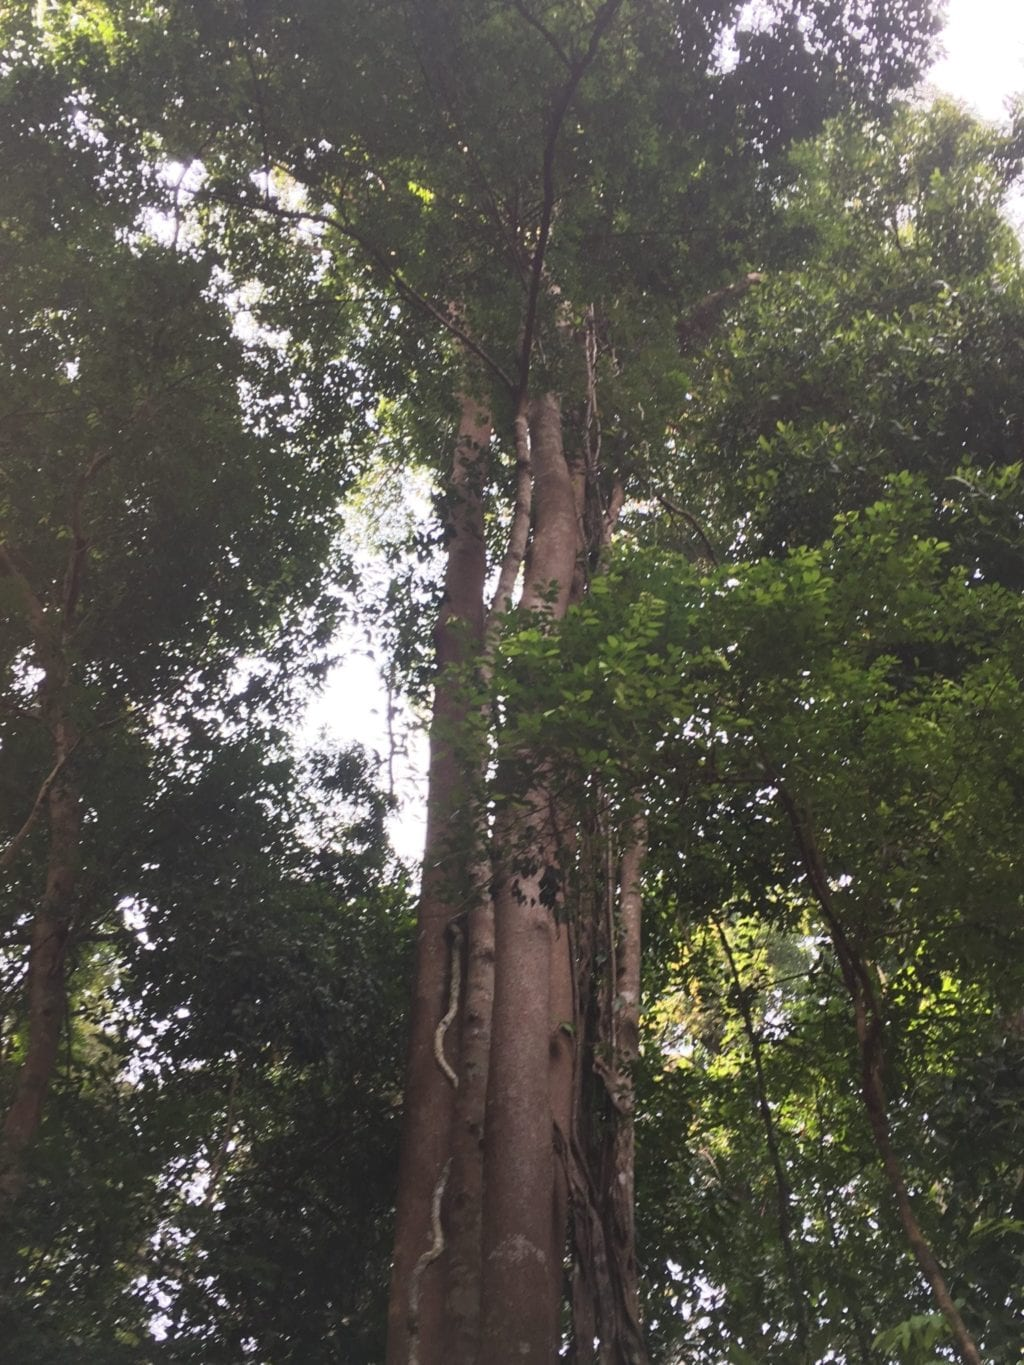 tallest tree in forest with wide tree trunk